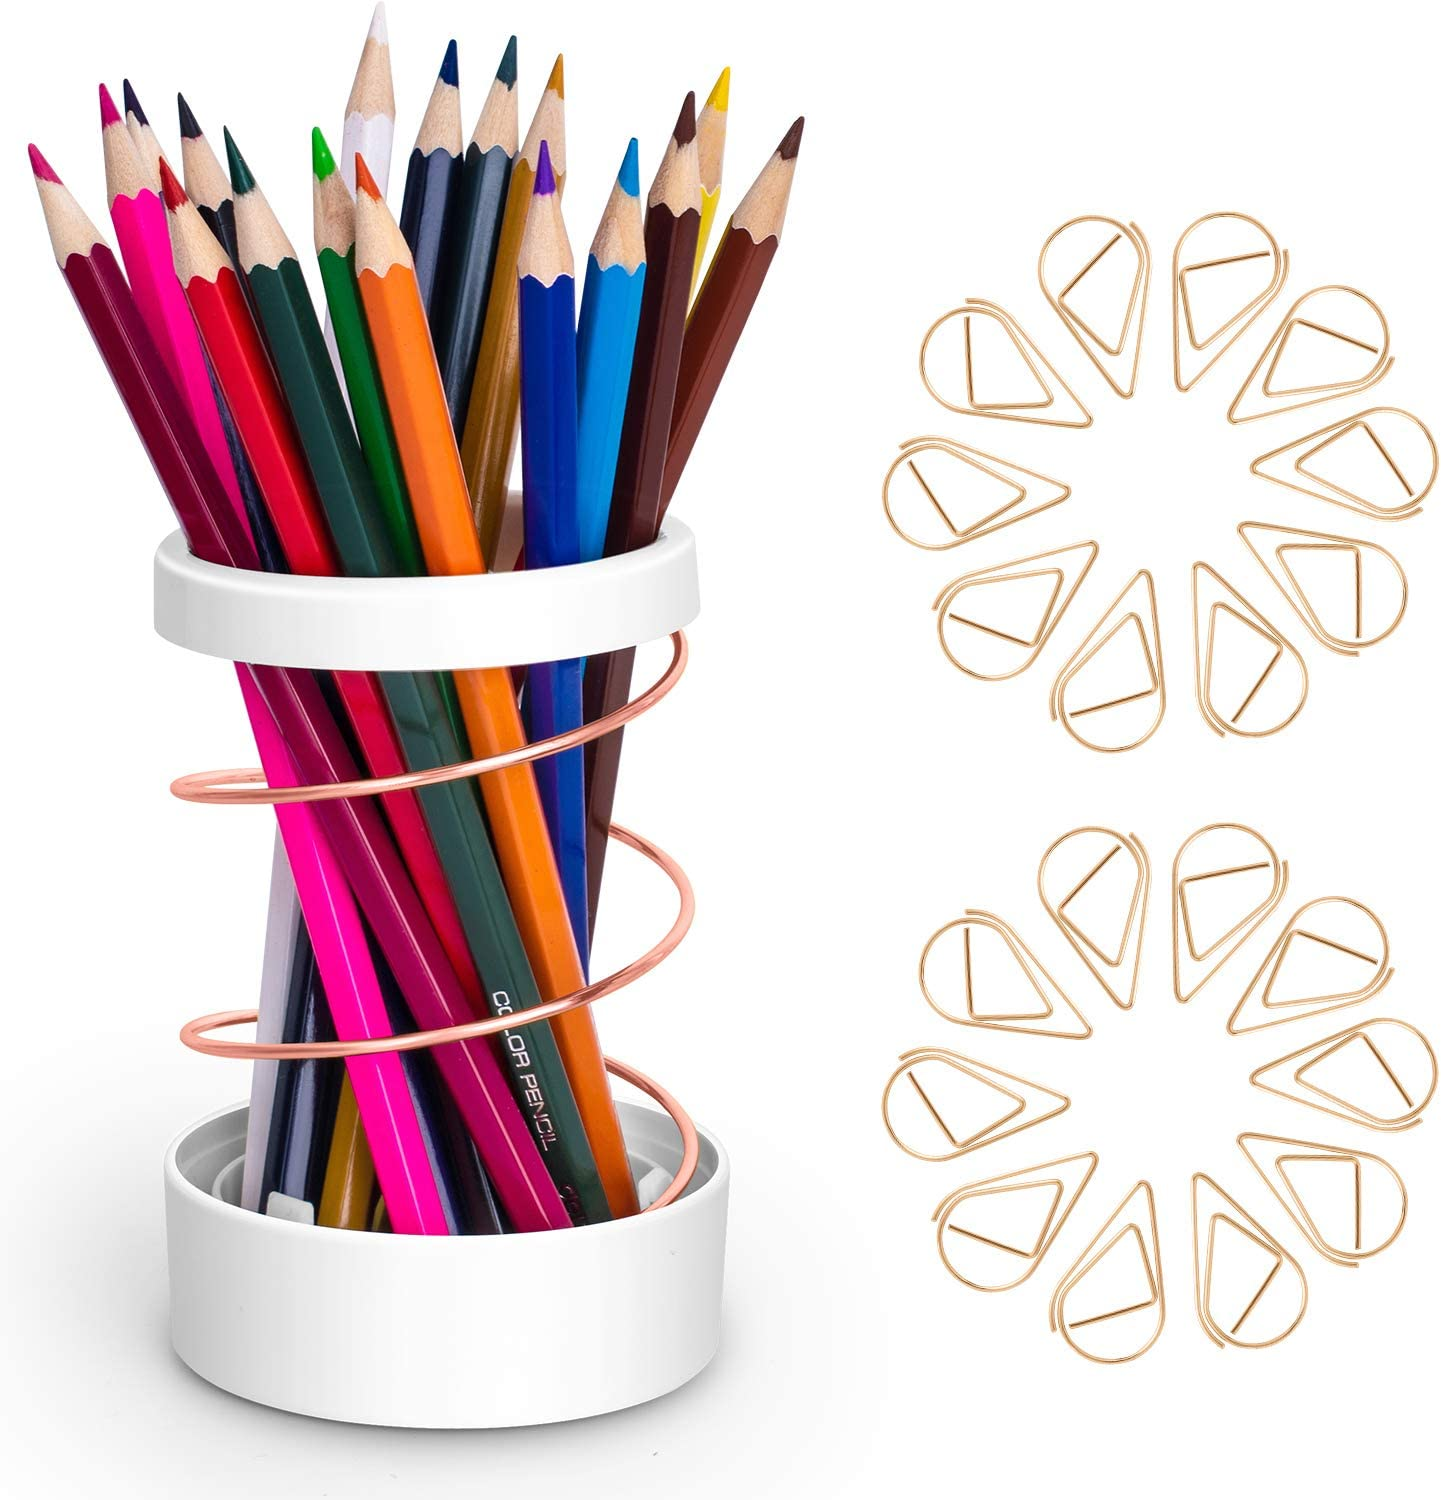 Pencil Pen Holder for Desk - Cute Rose Gold Pen Stand Cup Pencil Organizer,Makeup Brush Holders,Modern Home Office Desk Decor Supplies Gifts for Women Men | Scalable Spring Steel Wire